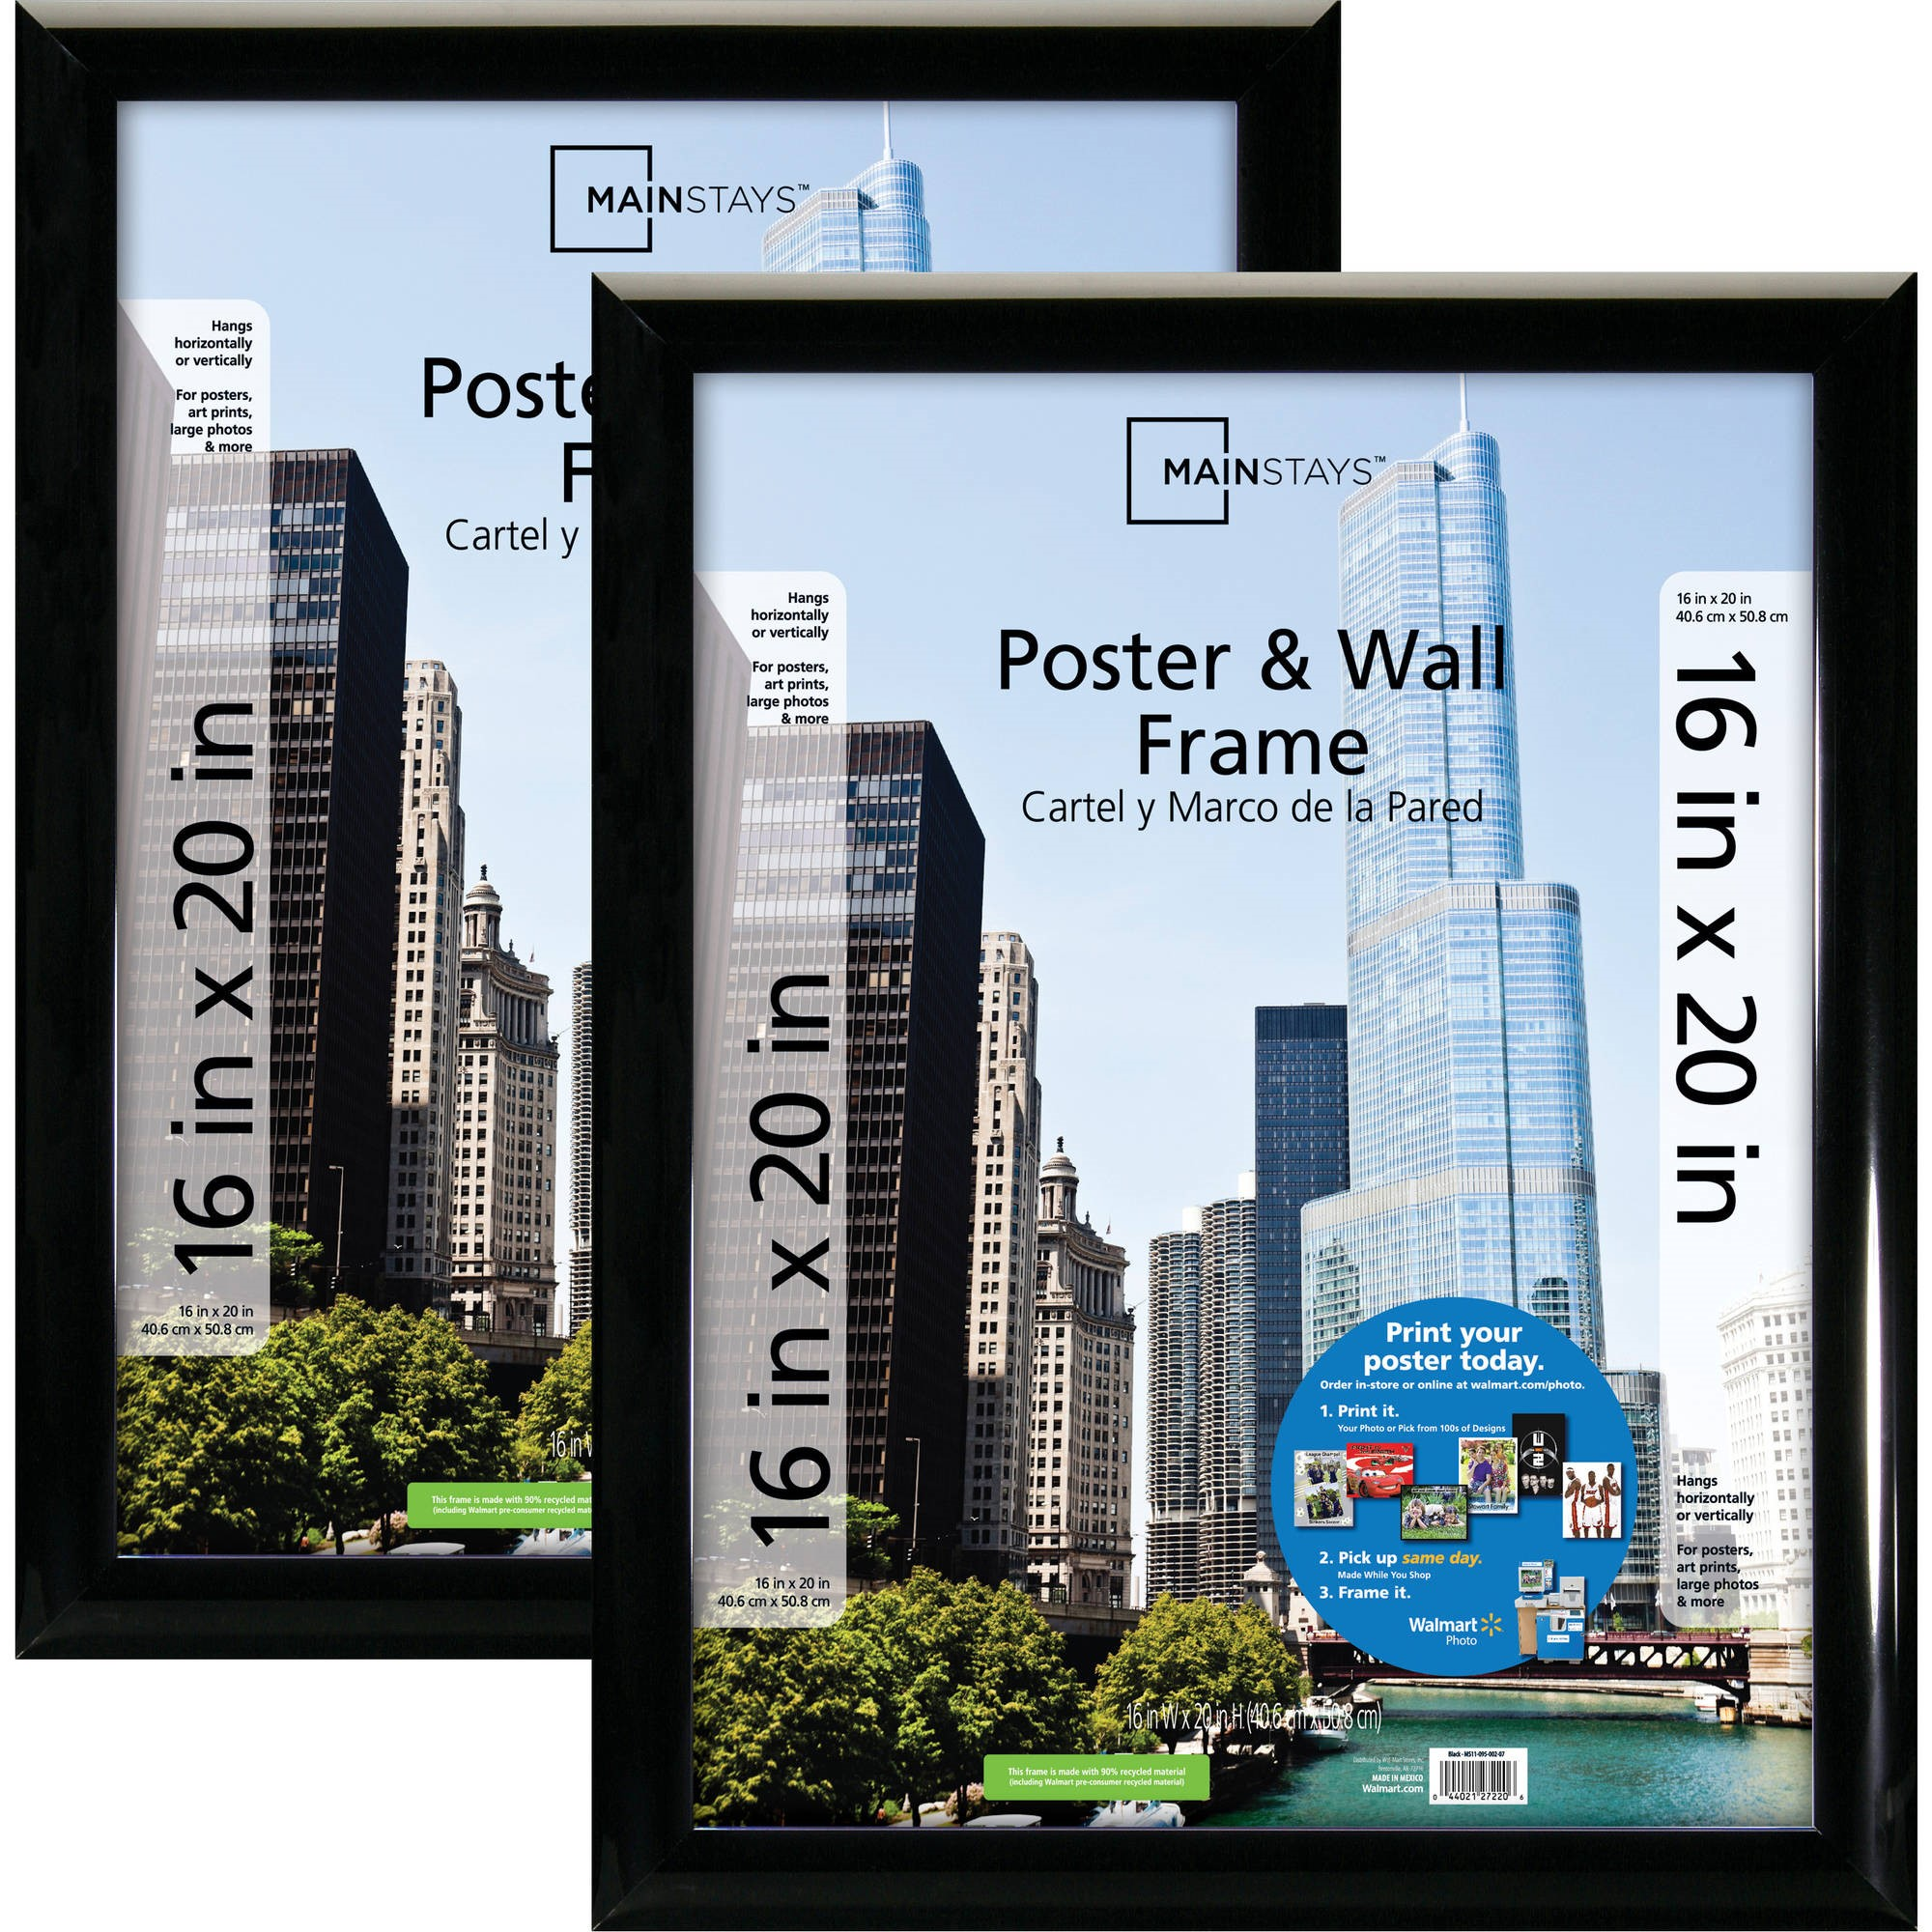 2 Pack 16x20 Poster Picture Frame Trendsetter Black For Room Wall Office Decor